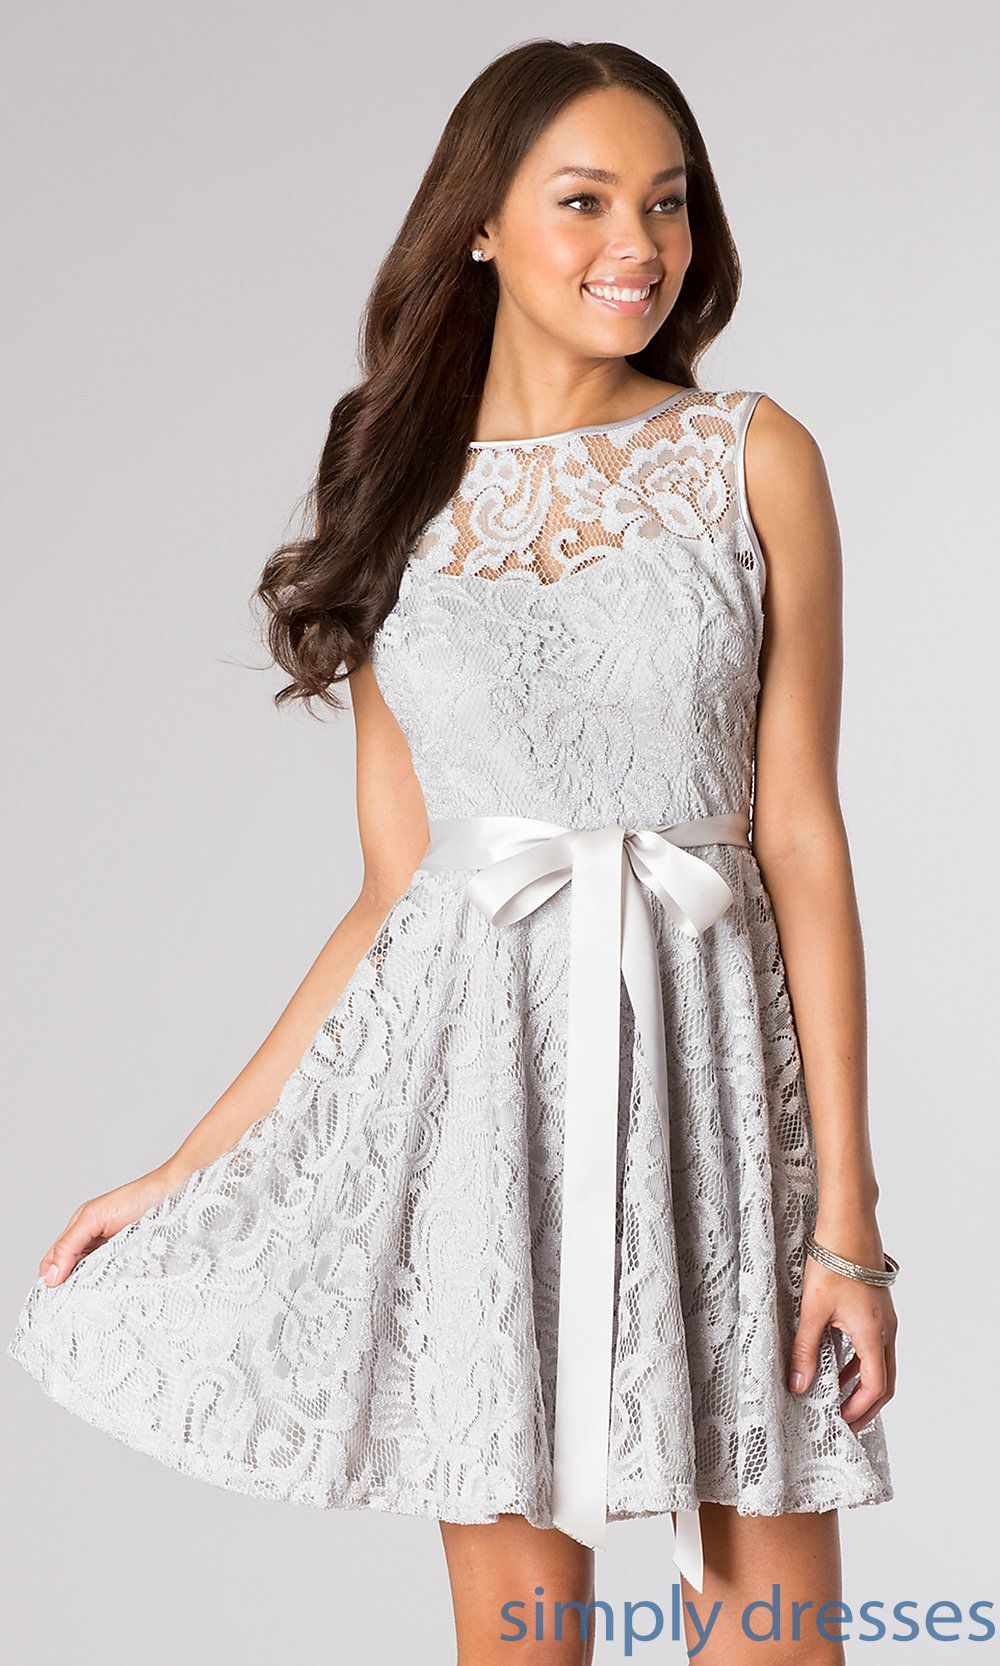 Short sleeveless lace dress by sally fashion quince